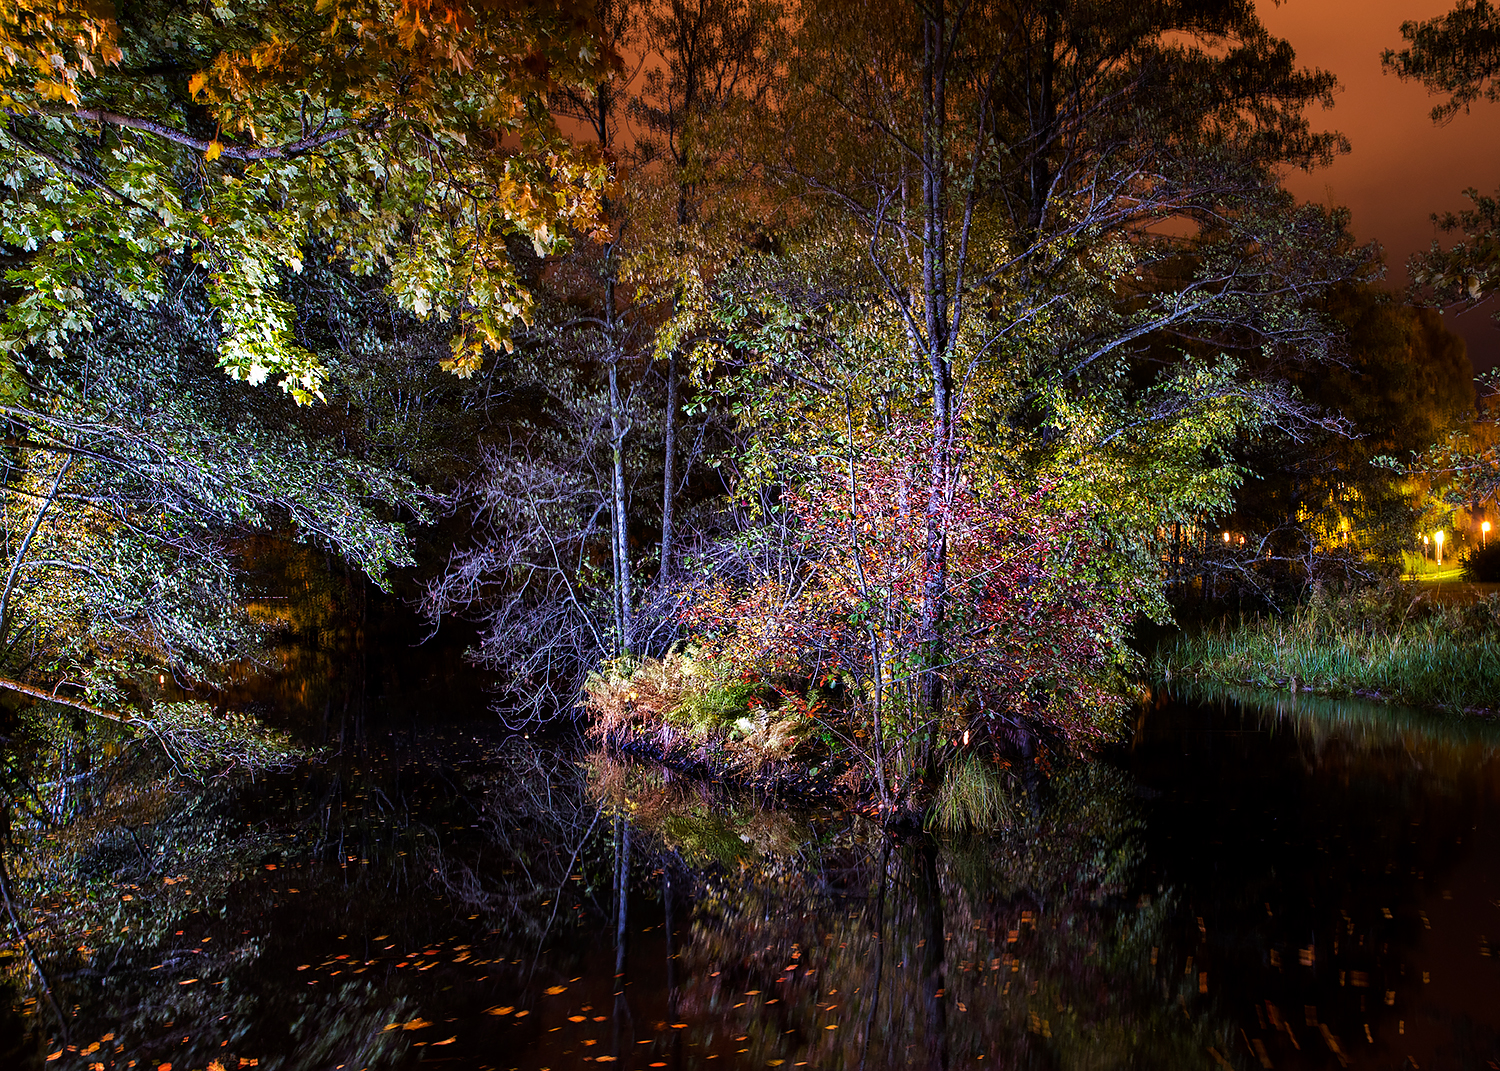 Lightpainted pond II